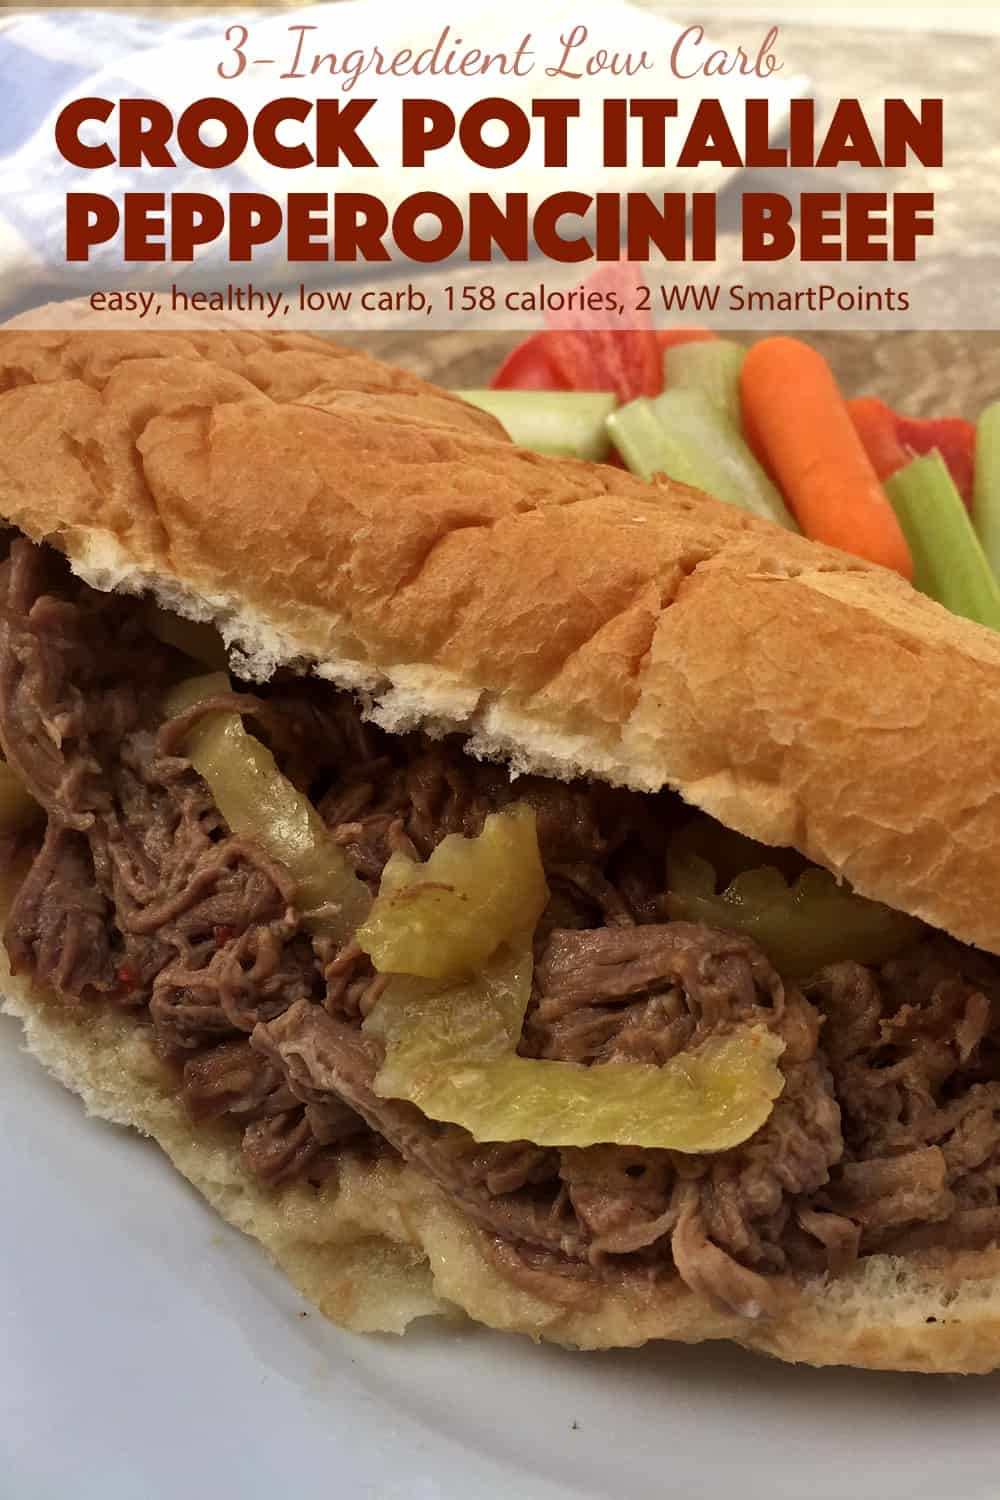 Shredded Italian pepperoncini beef in a sandwich roll with vegetable sticks